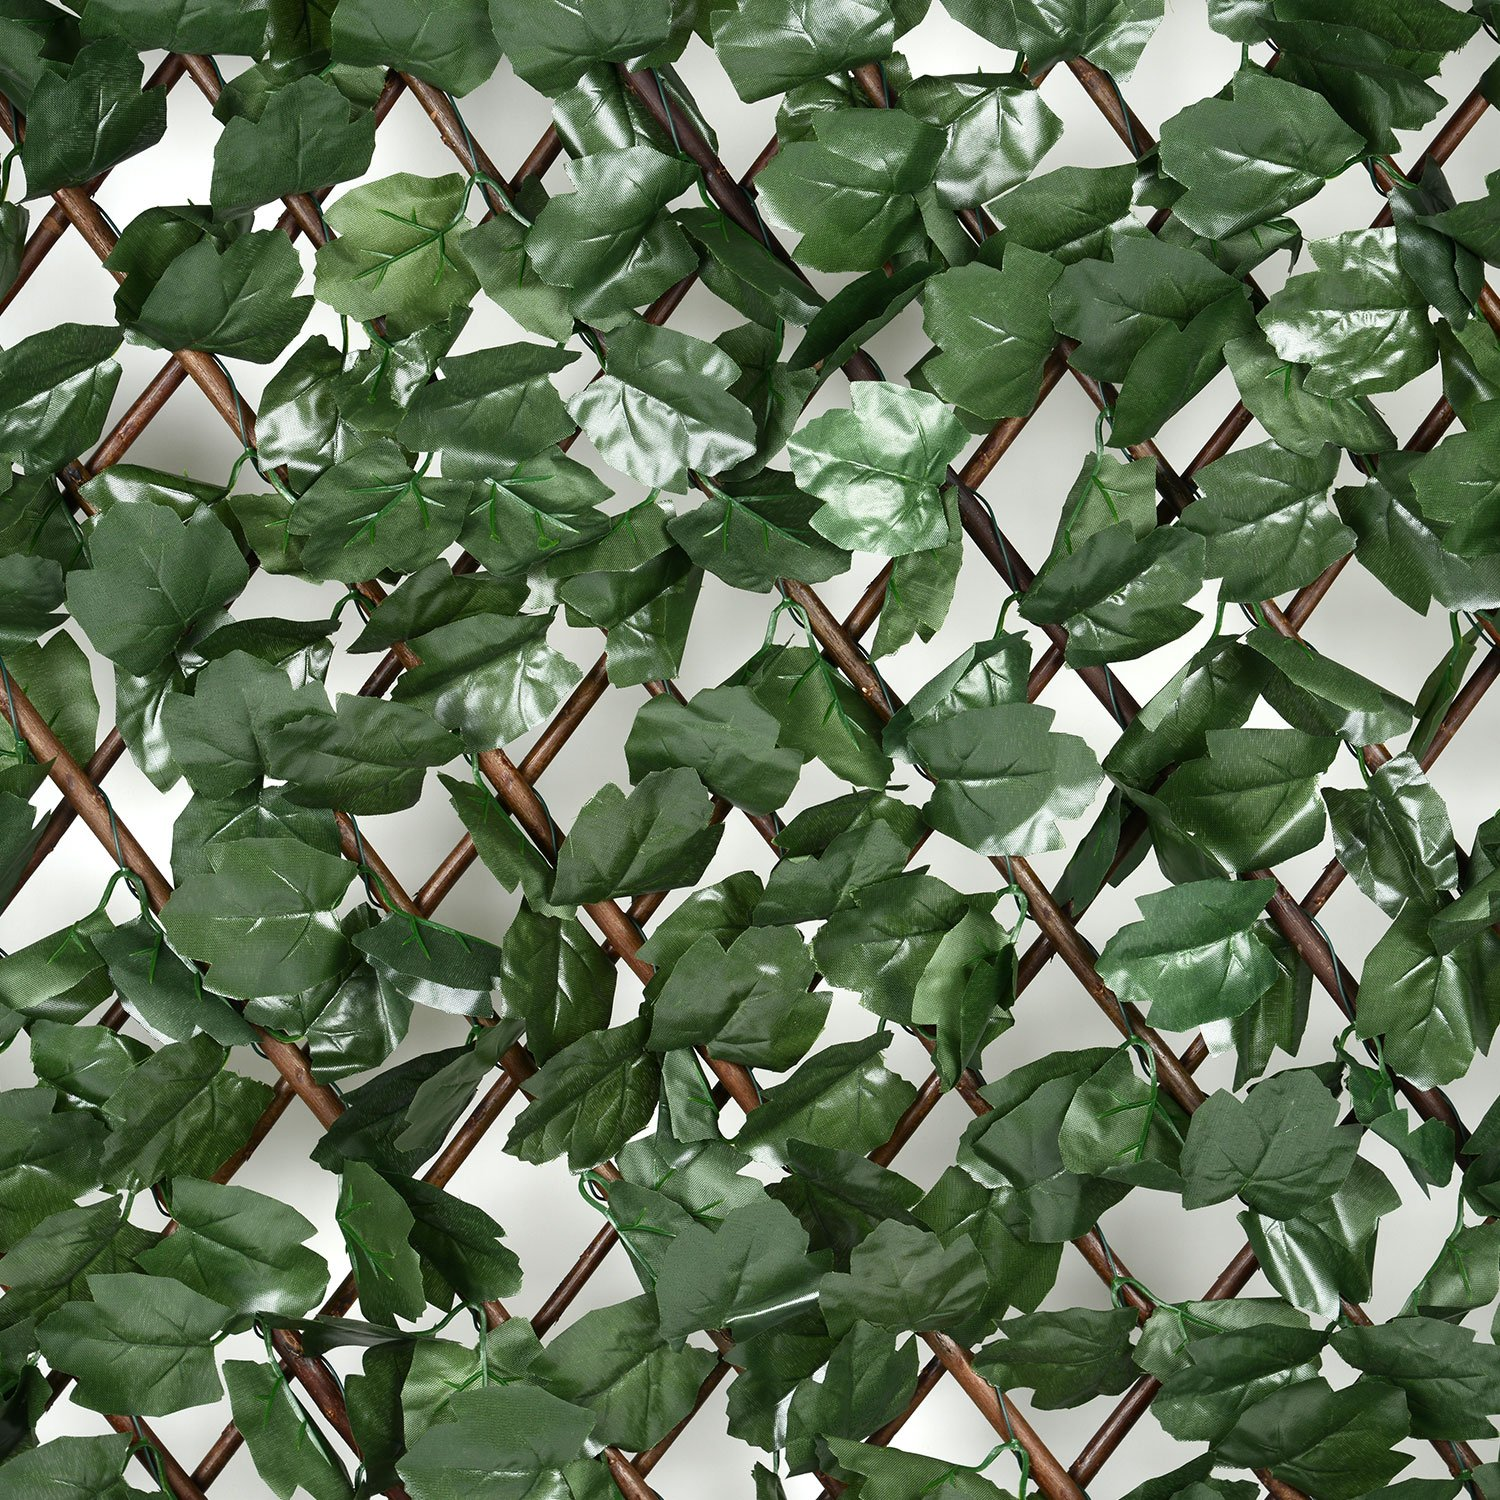 expandable trellis with leaves extends to 2m long garden wooden